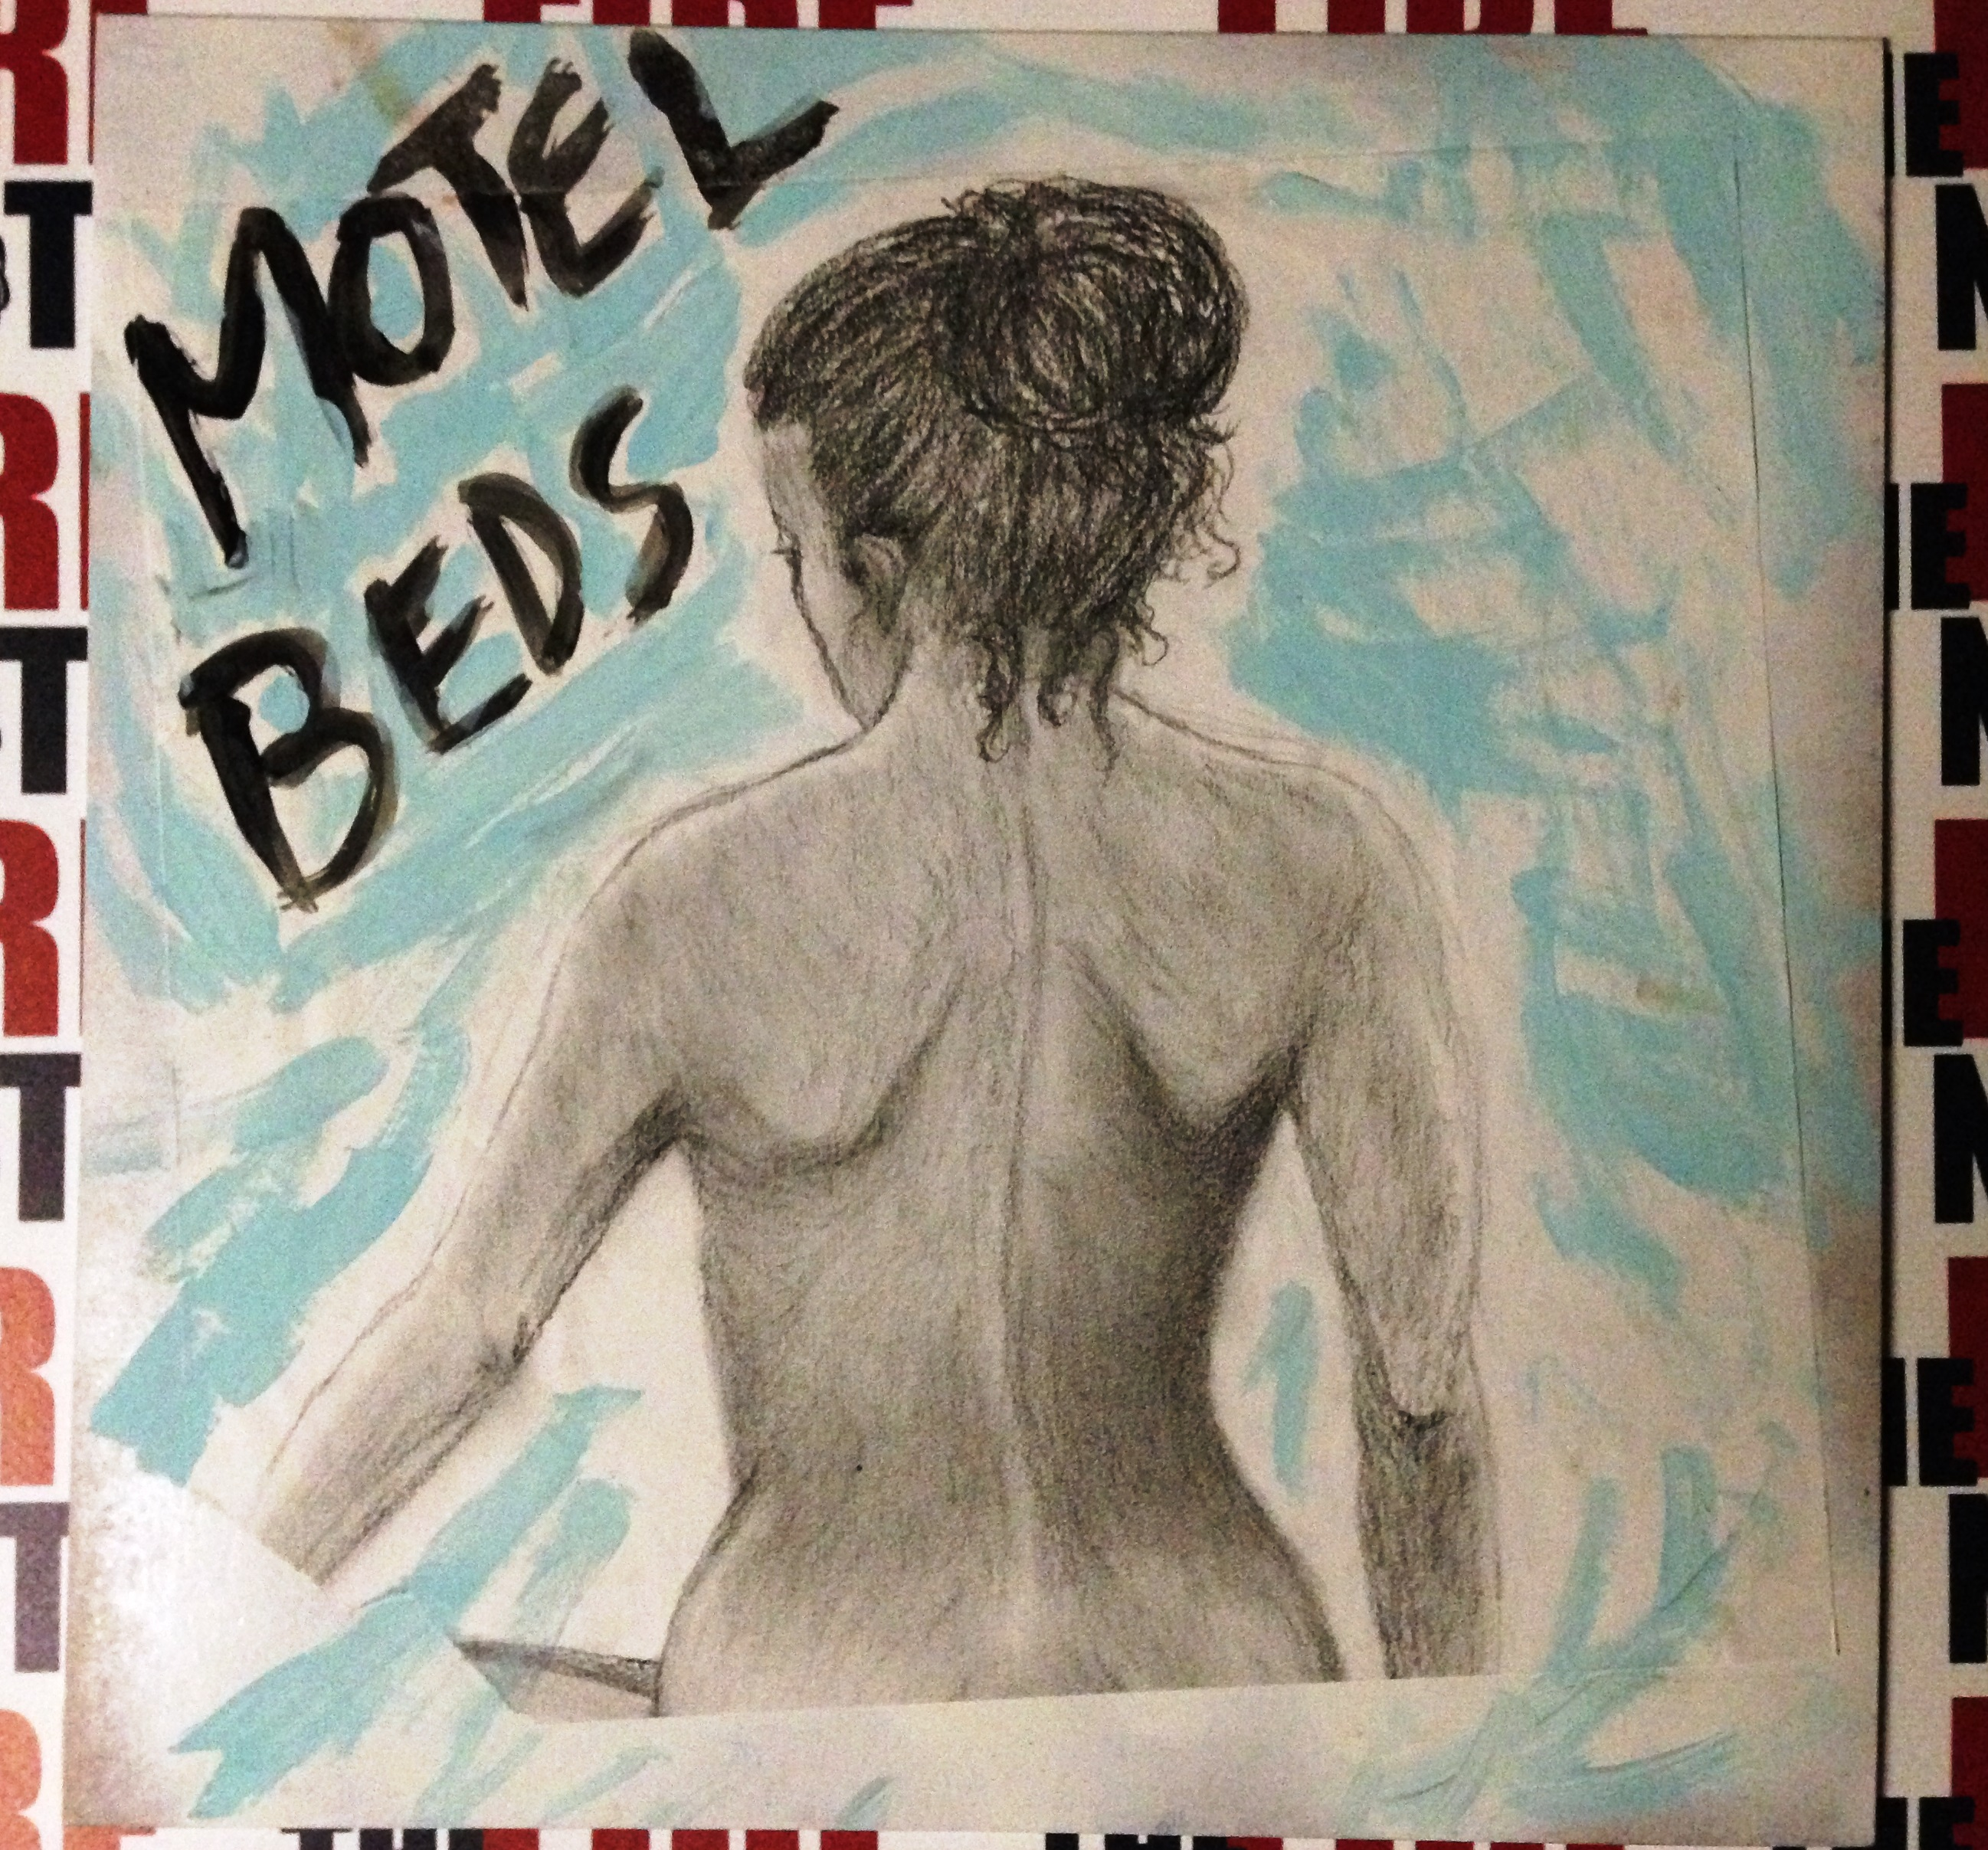 Motel Beds: These Are The Days Gone By [Album Review]